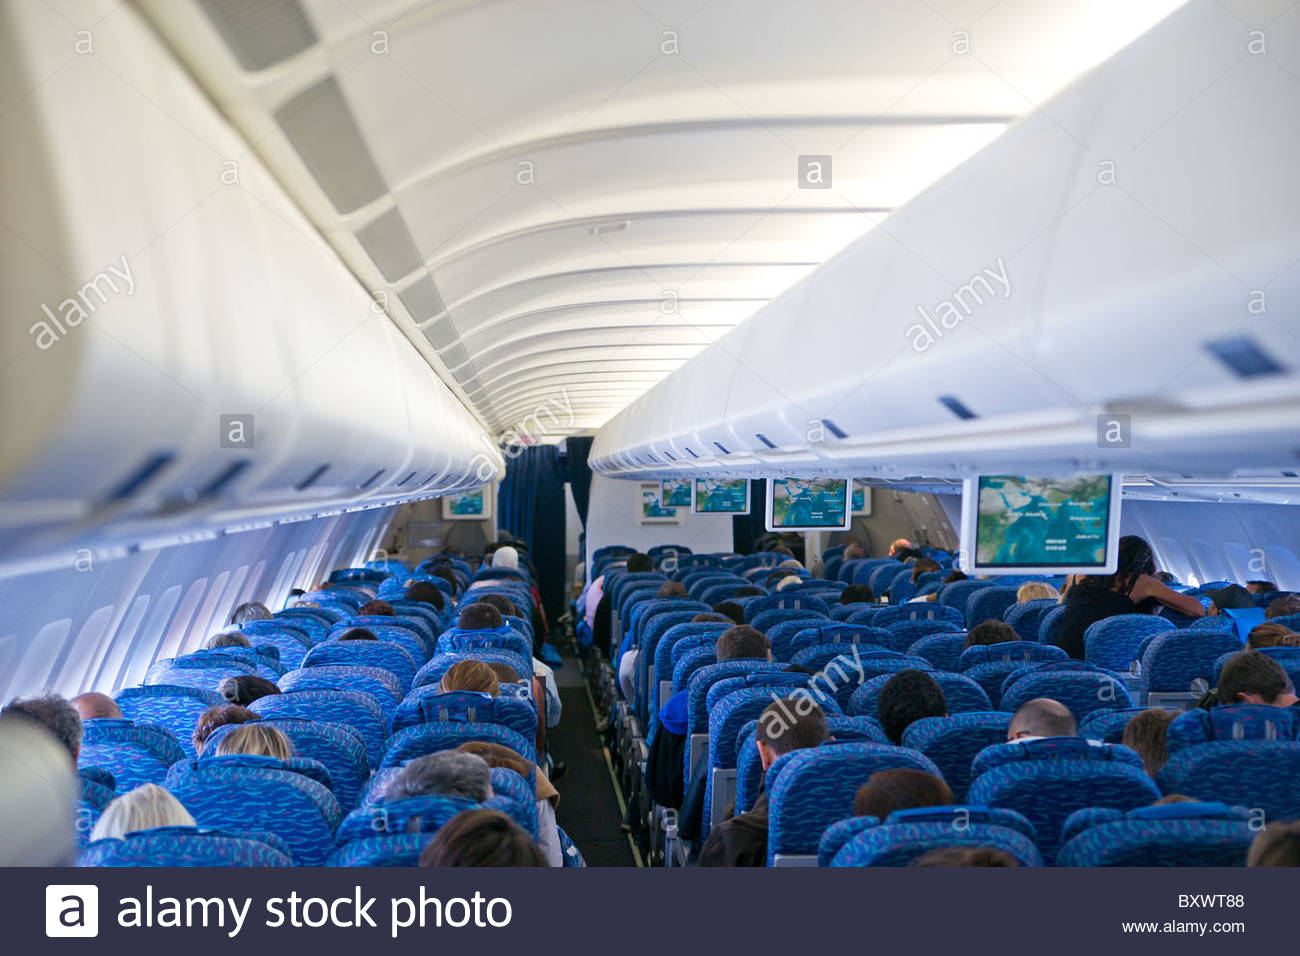 Aircraft cabin during flight (Airbus A330) - Stock Image